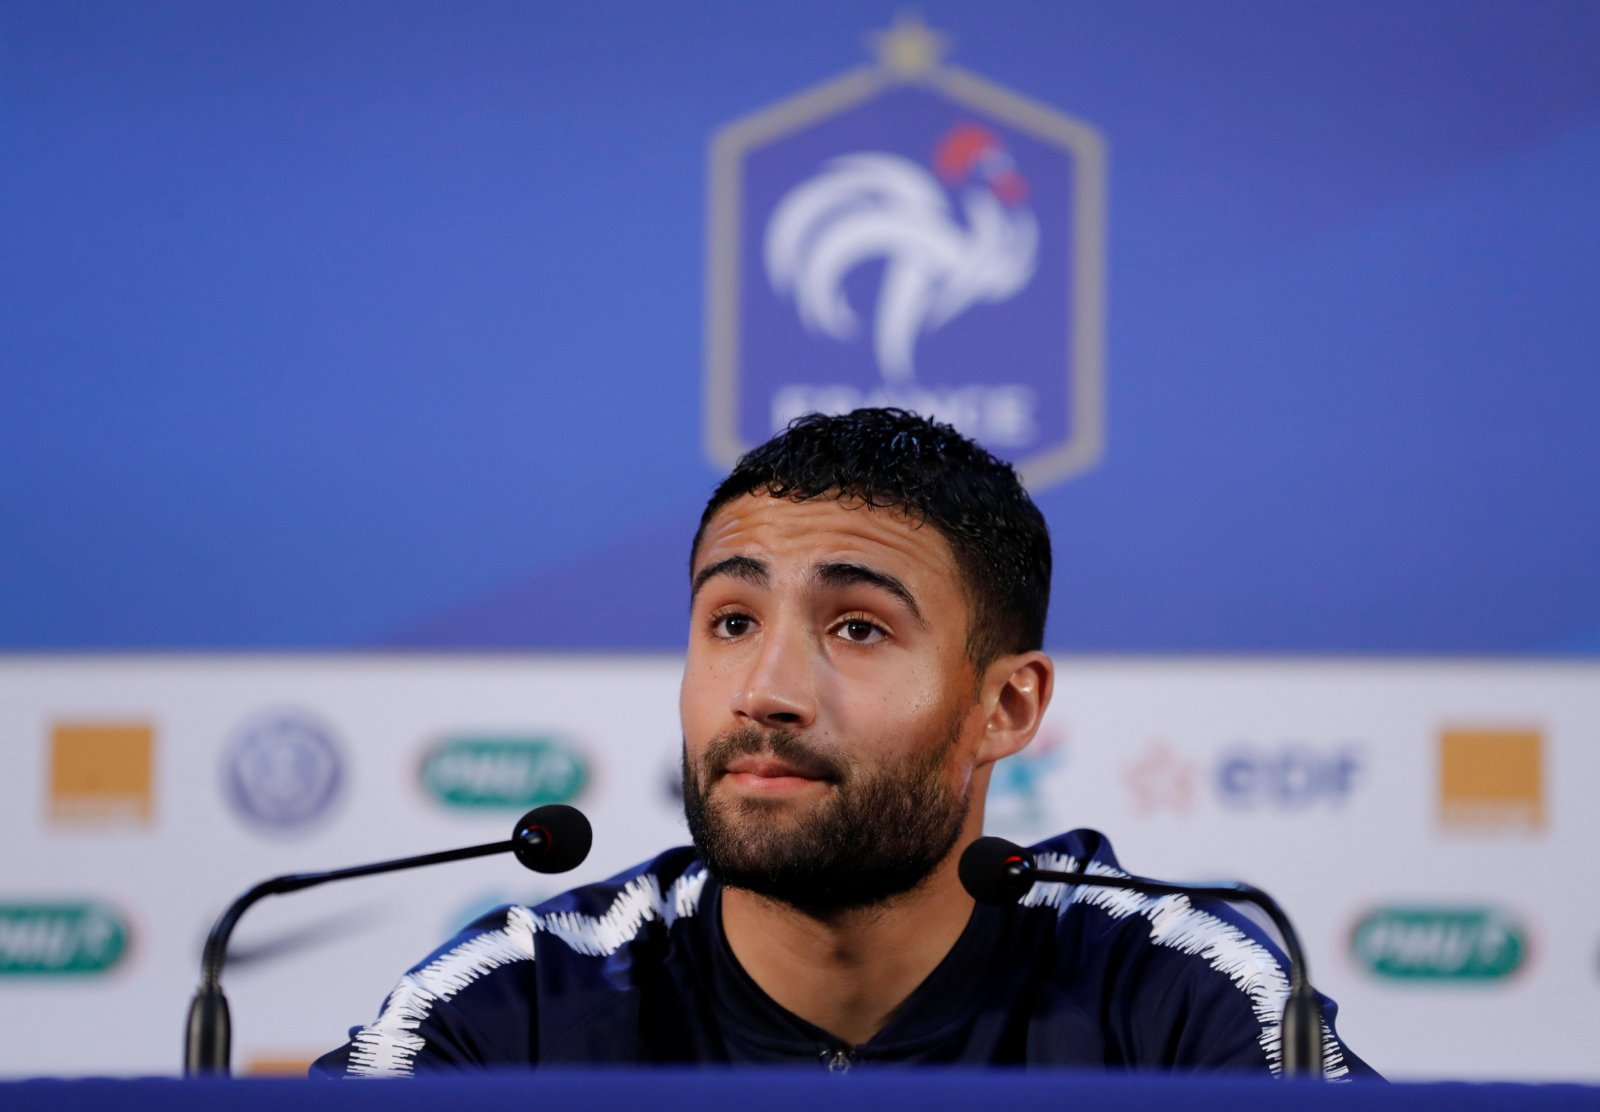 Liverpool fans want to get Fekir signed to shut up Lyon President